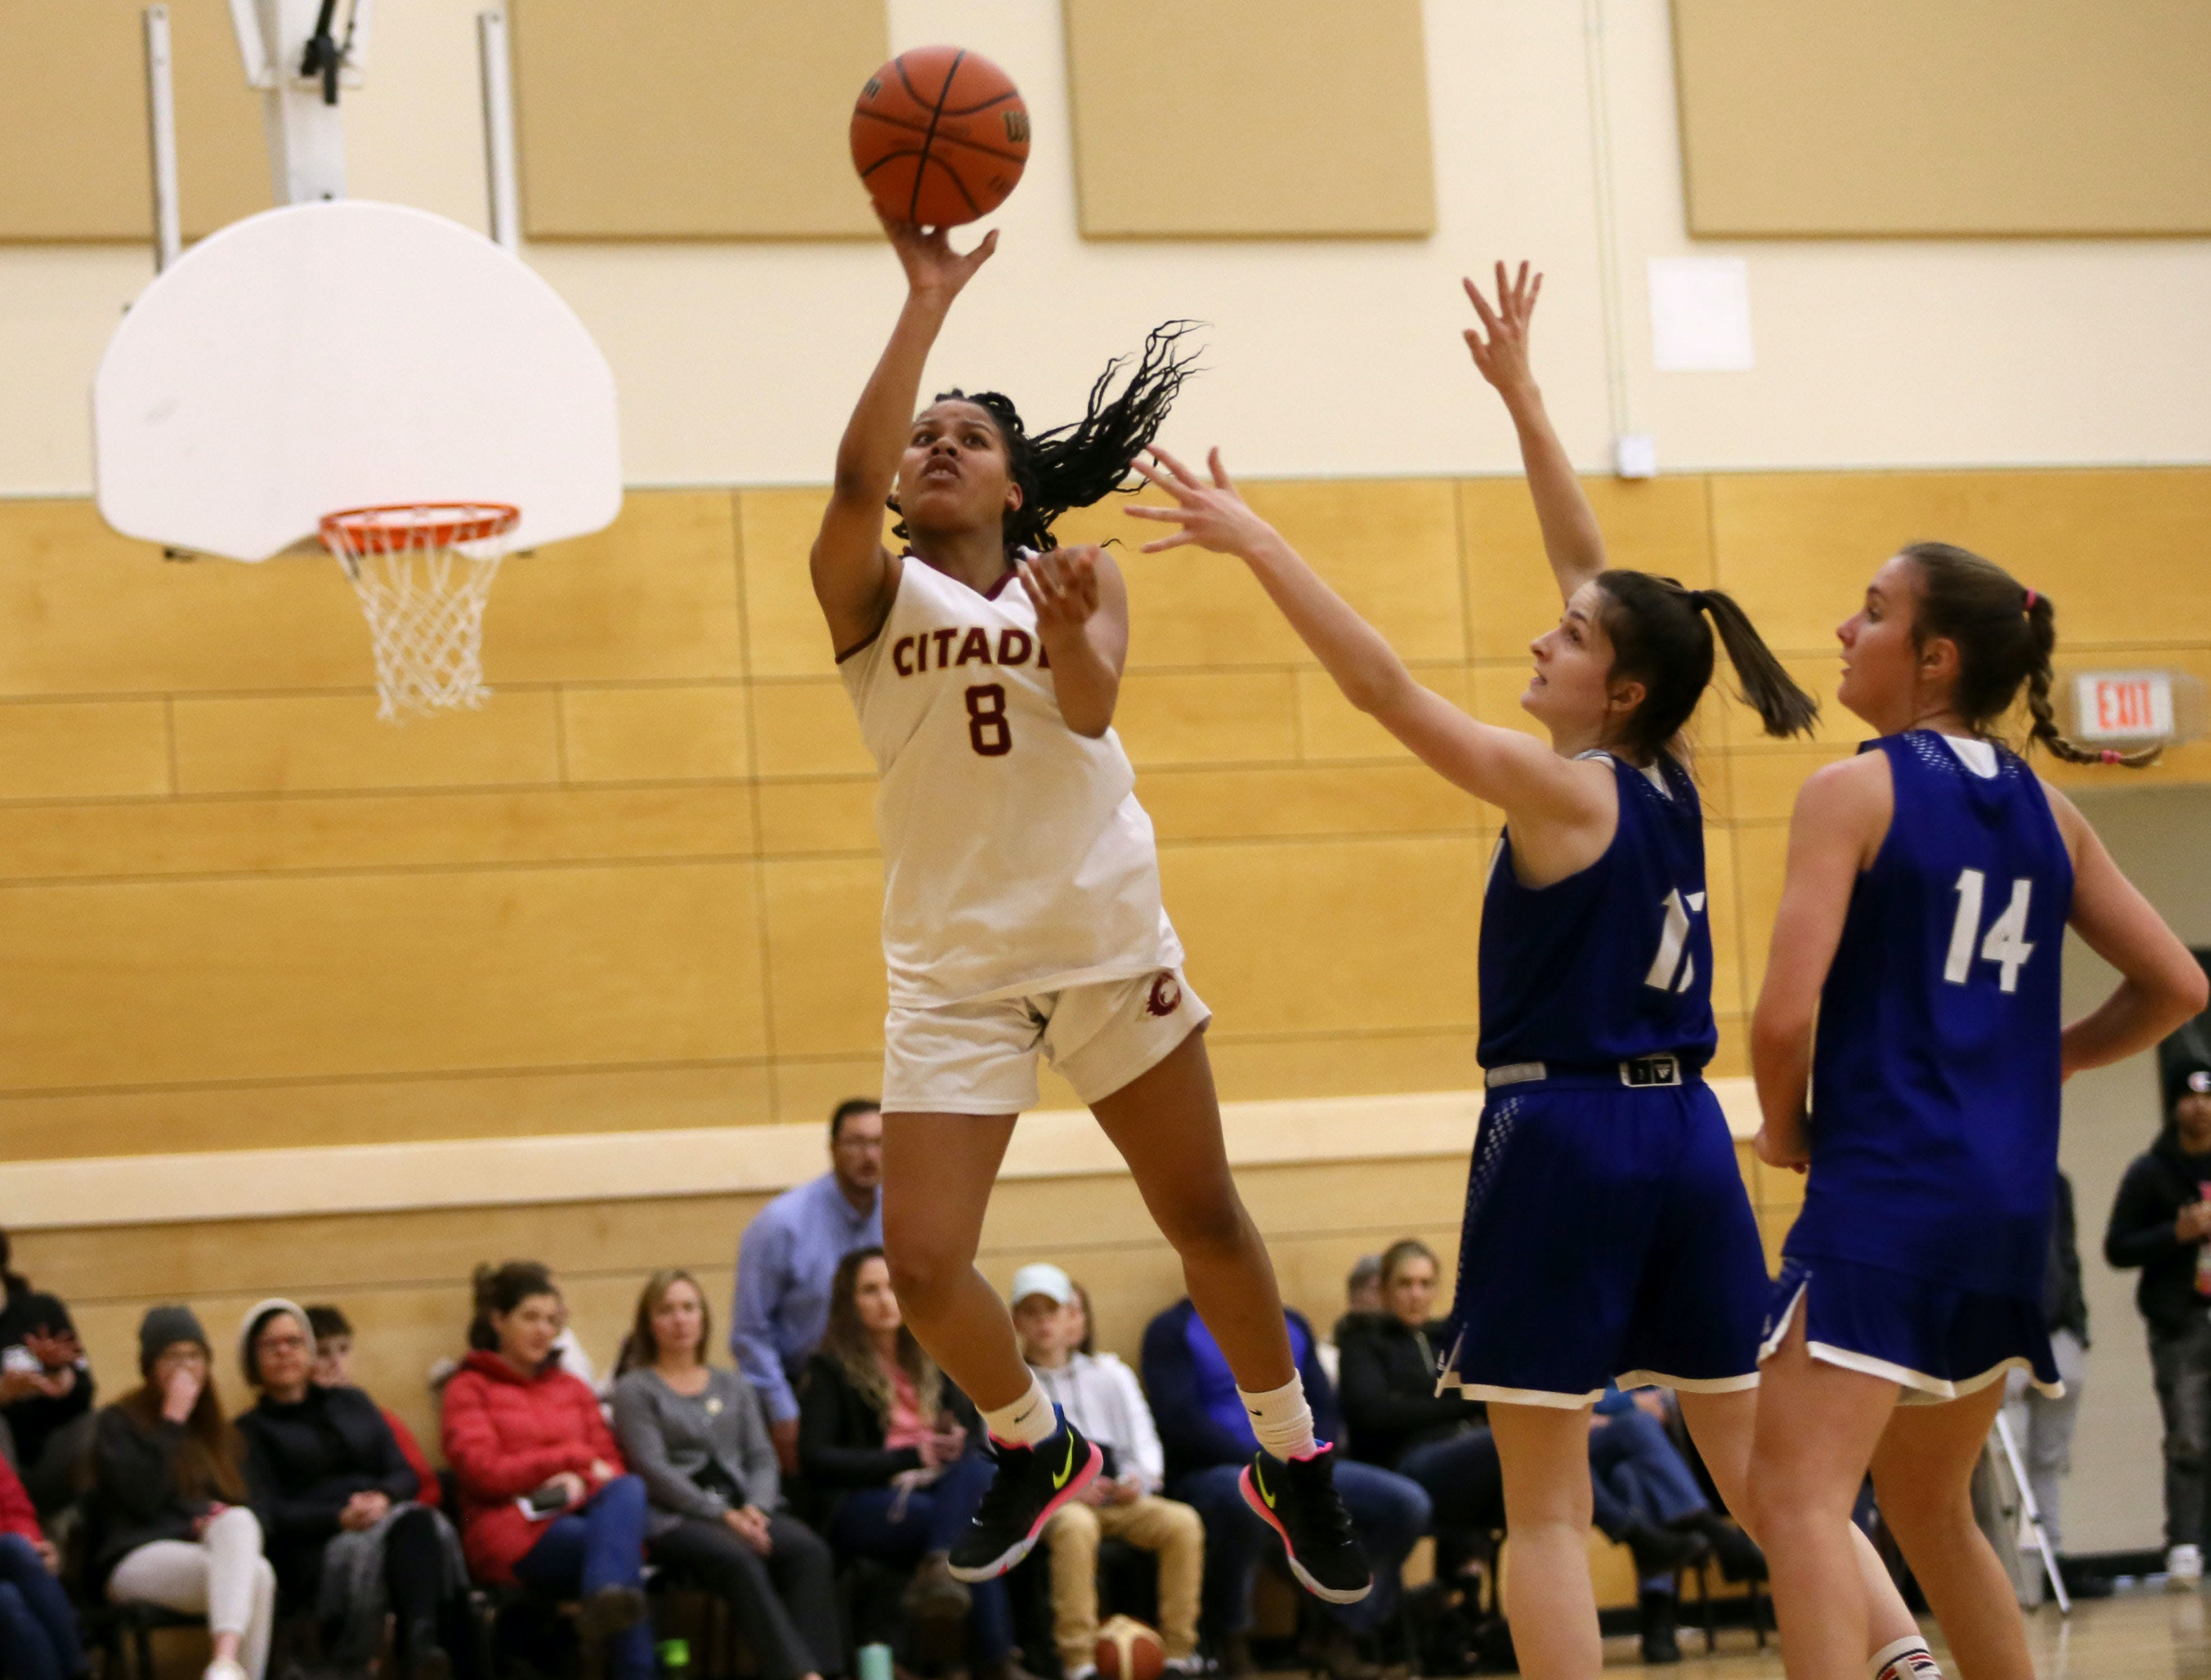 Citadel's Kyasiah Derry drives to the hoop past Lockview defenders Emma Foye and Ellie Lancaster during a metro high school basketball league game. The Phoenix will face the Dartmouth Spartans in the Capital Region championship on Tuesday. - Tim Krochak / The Chronicle Herald